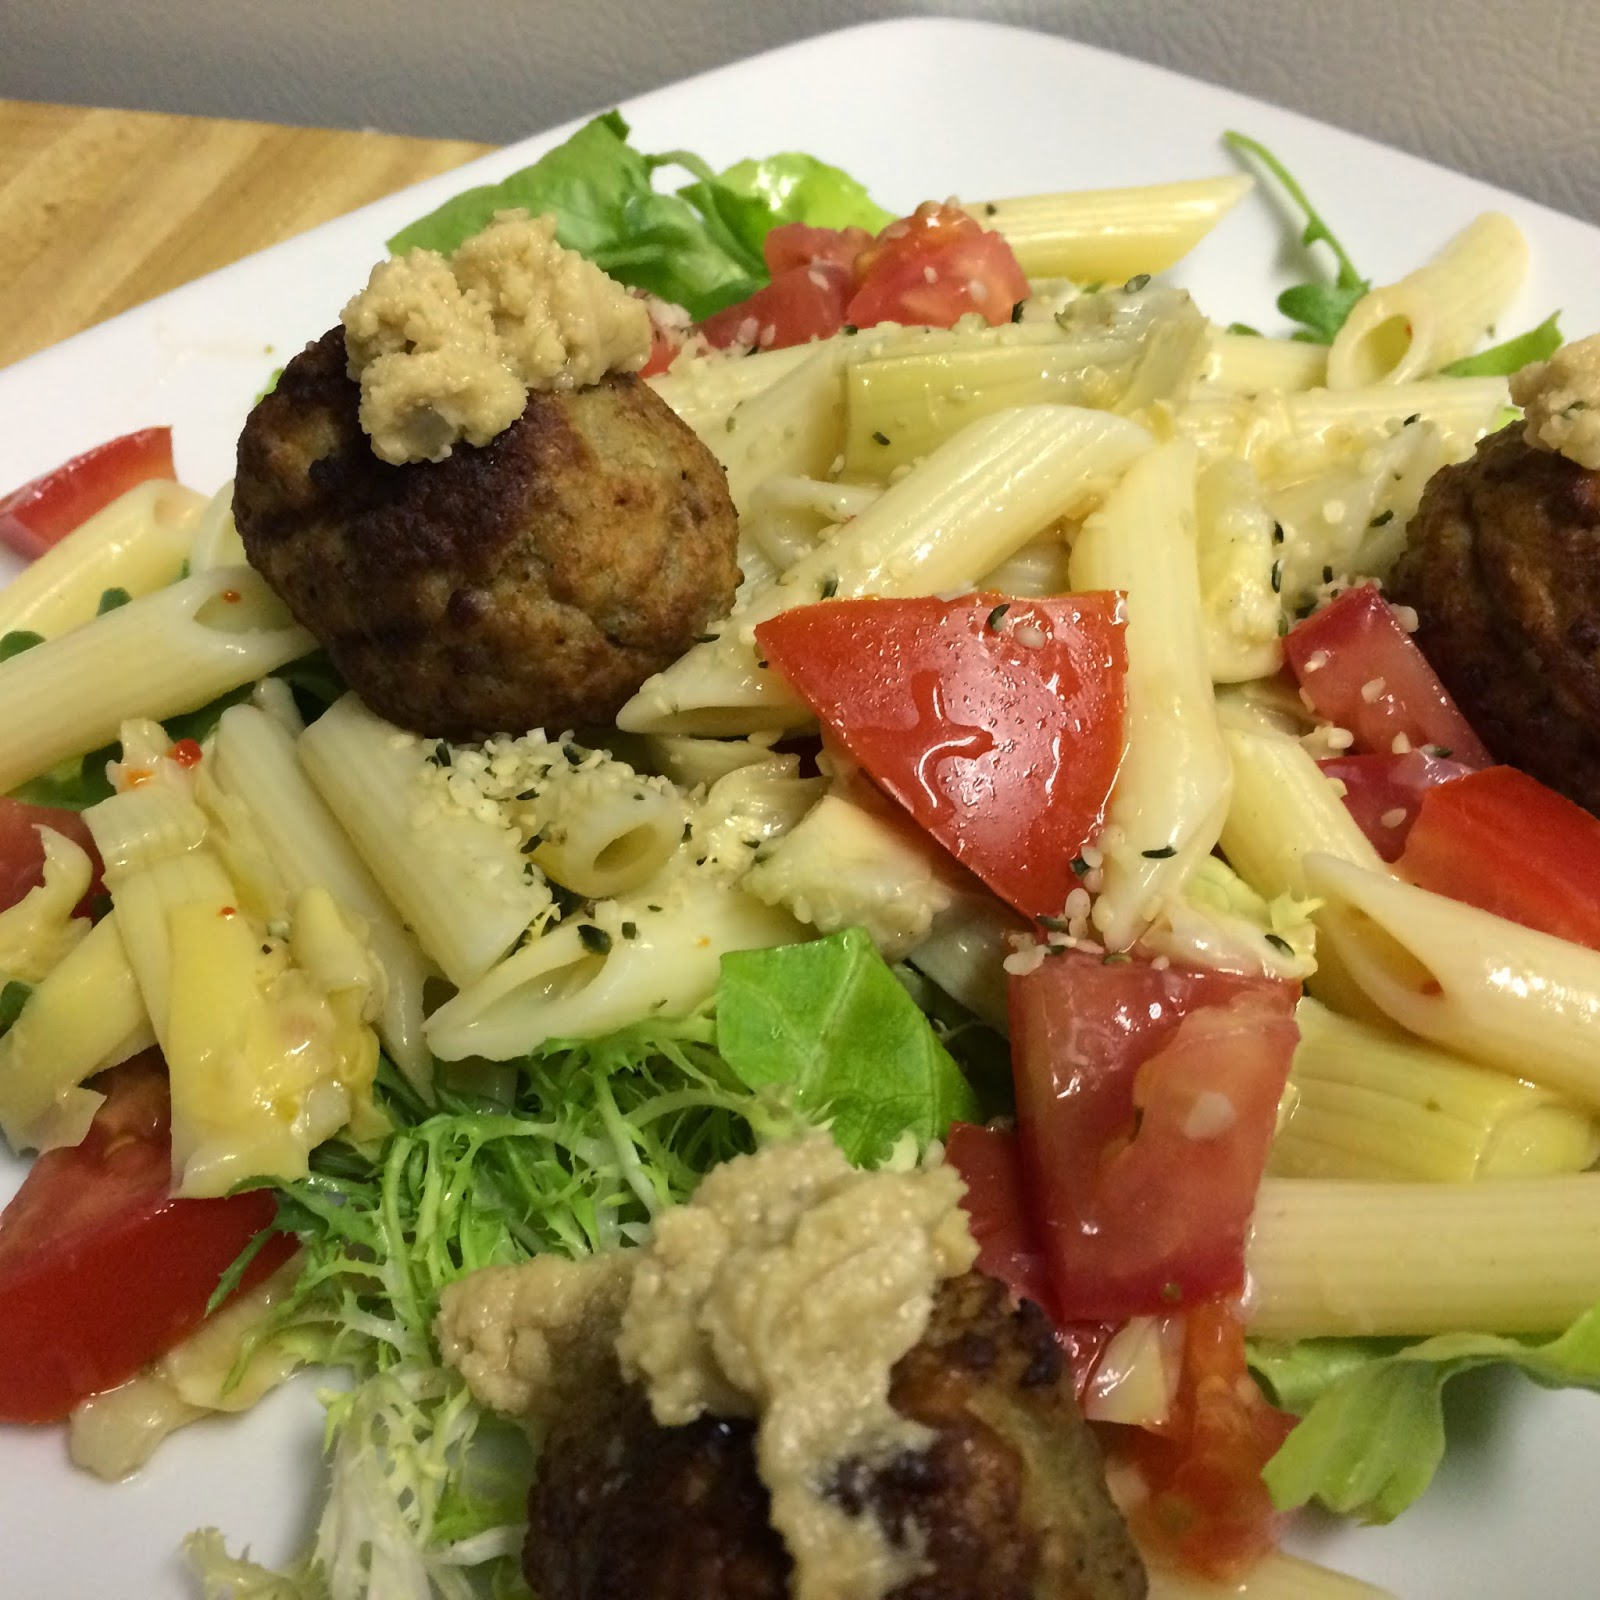 Tahini Pasta Salad with Turkey Meatballs